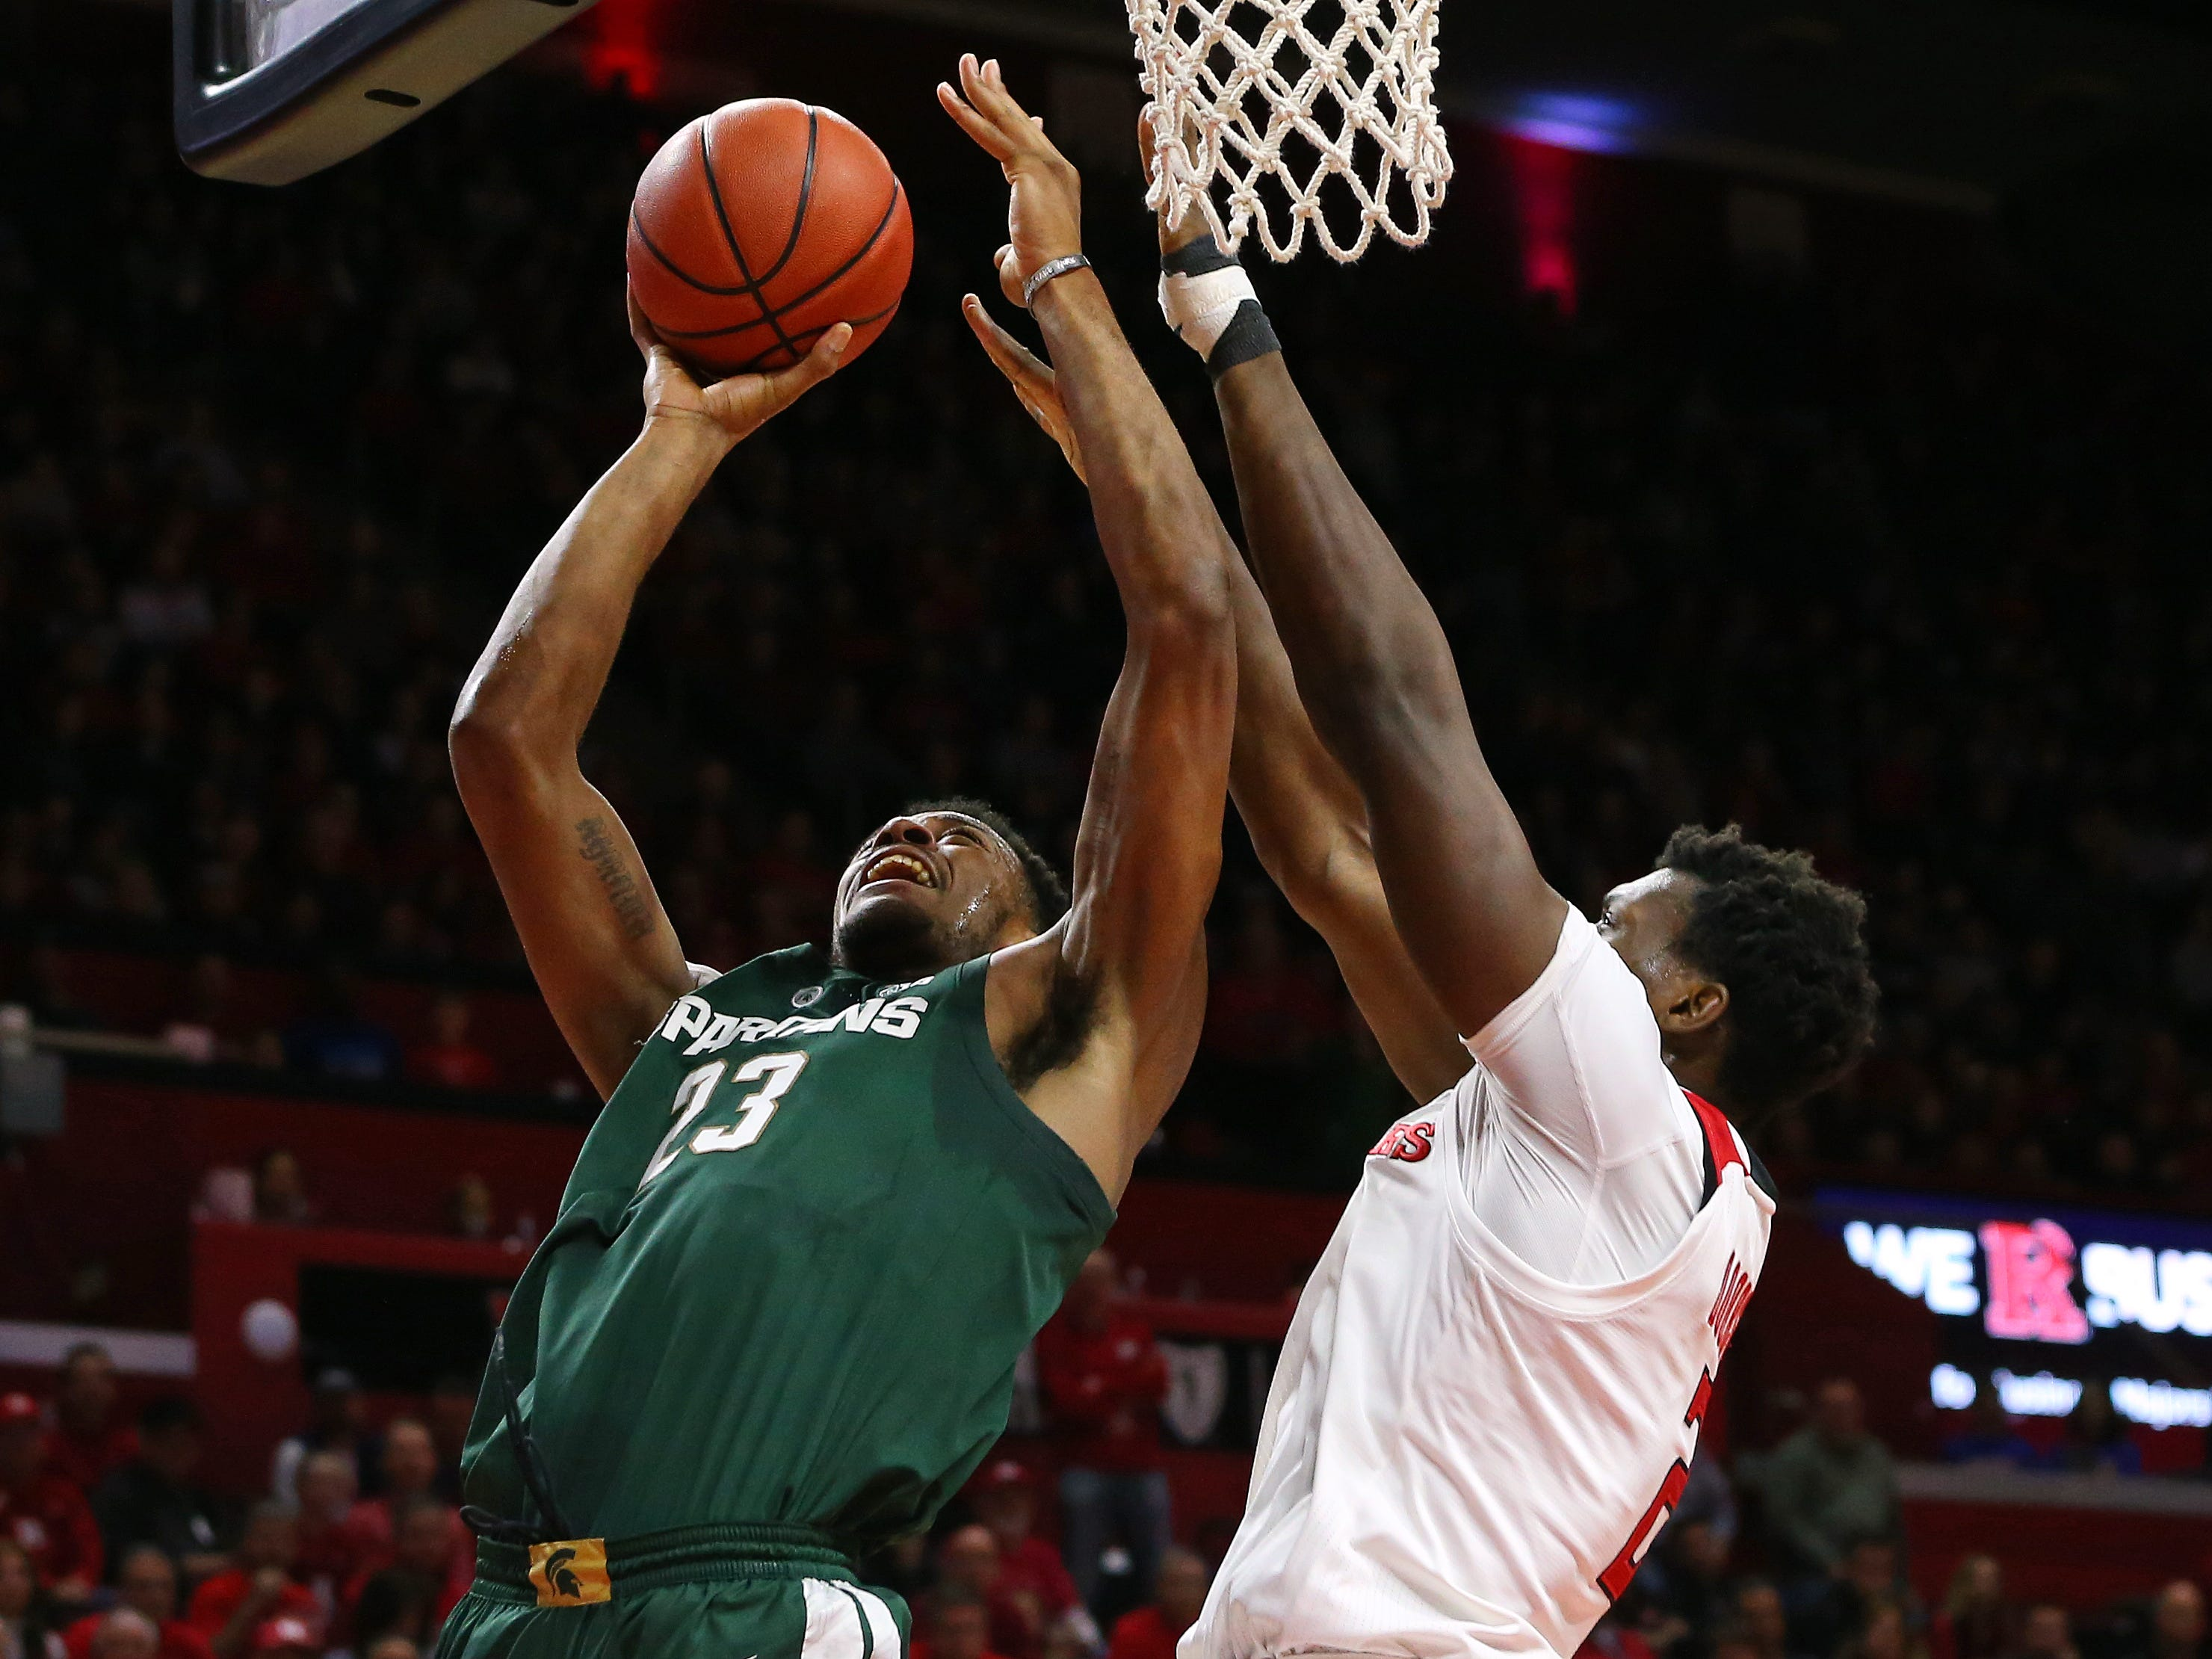 Xavier Tillman #23 of the Michigan State Spartans attempts a shot as Shaquille Doorson #2 of the Rutgers Scarlet Knights defends during the first half of a college basketball game at the Rutgers Athletic Center on November 30, 2018 in Piscataway, New Jersey.